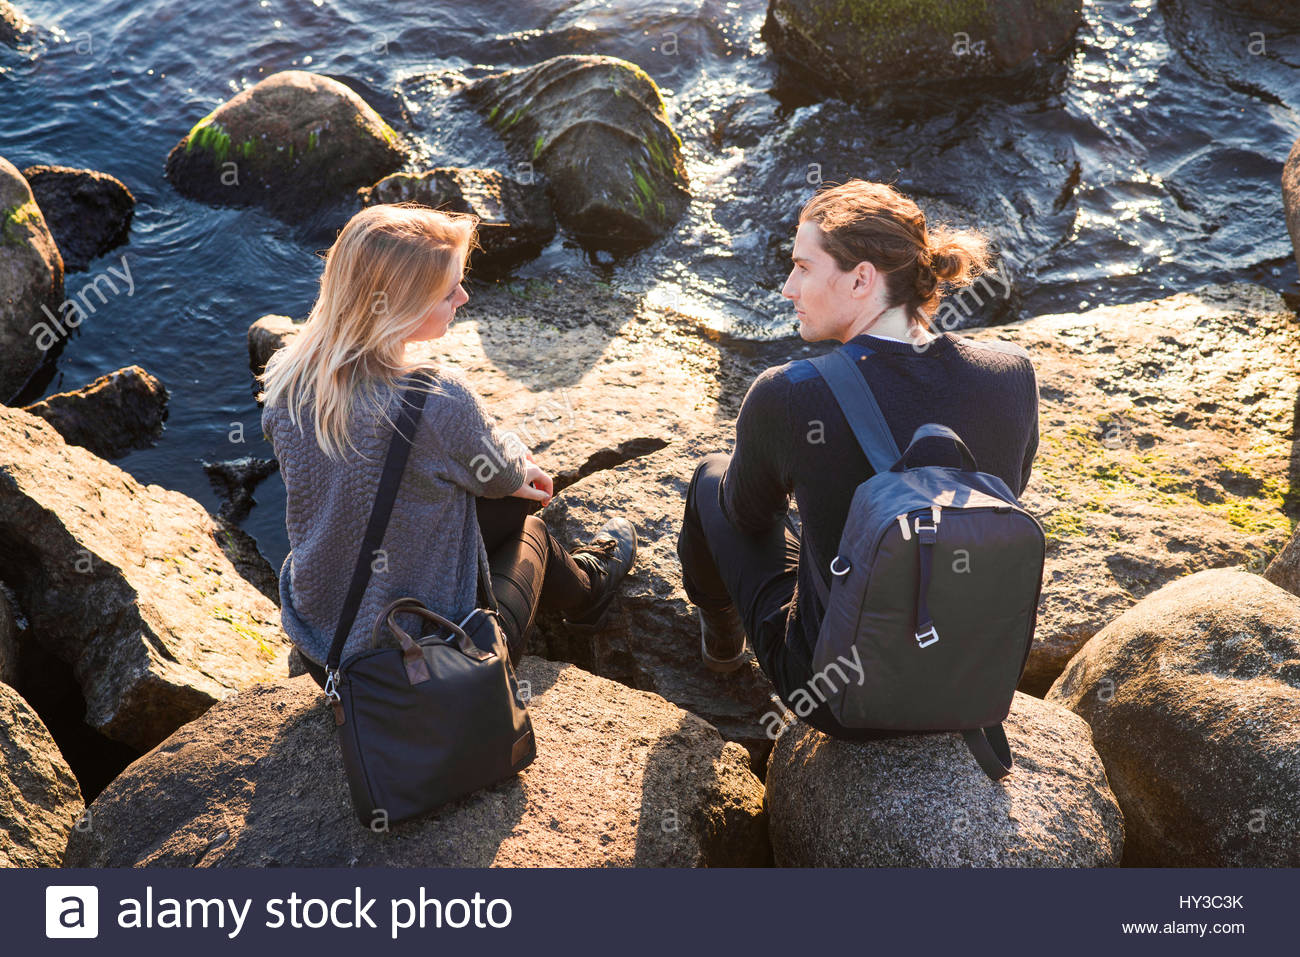 Sweden, Skane, Malmo, Young man and woman talking on rocky seashore - Stock Image